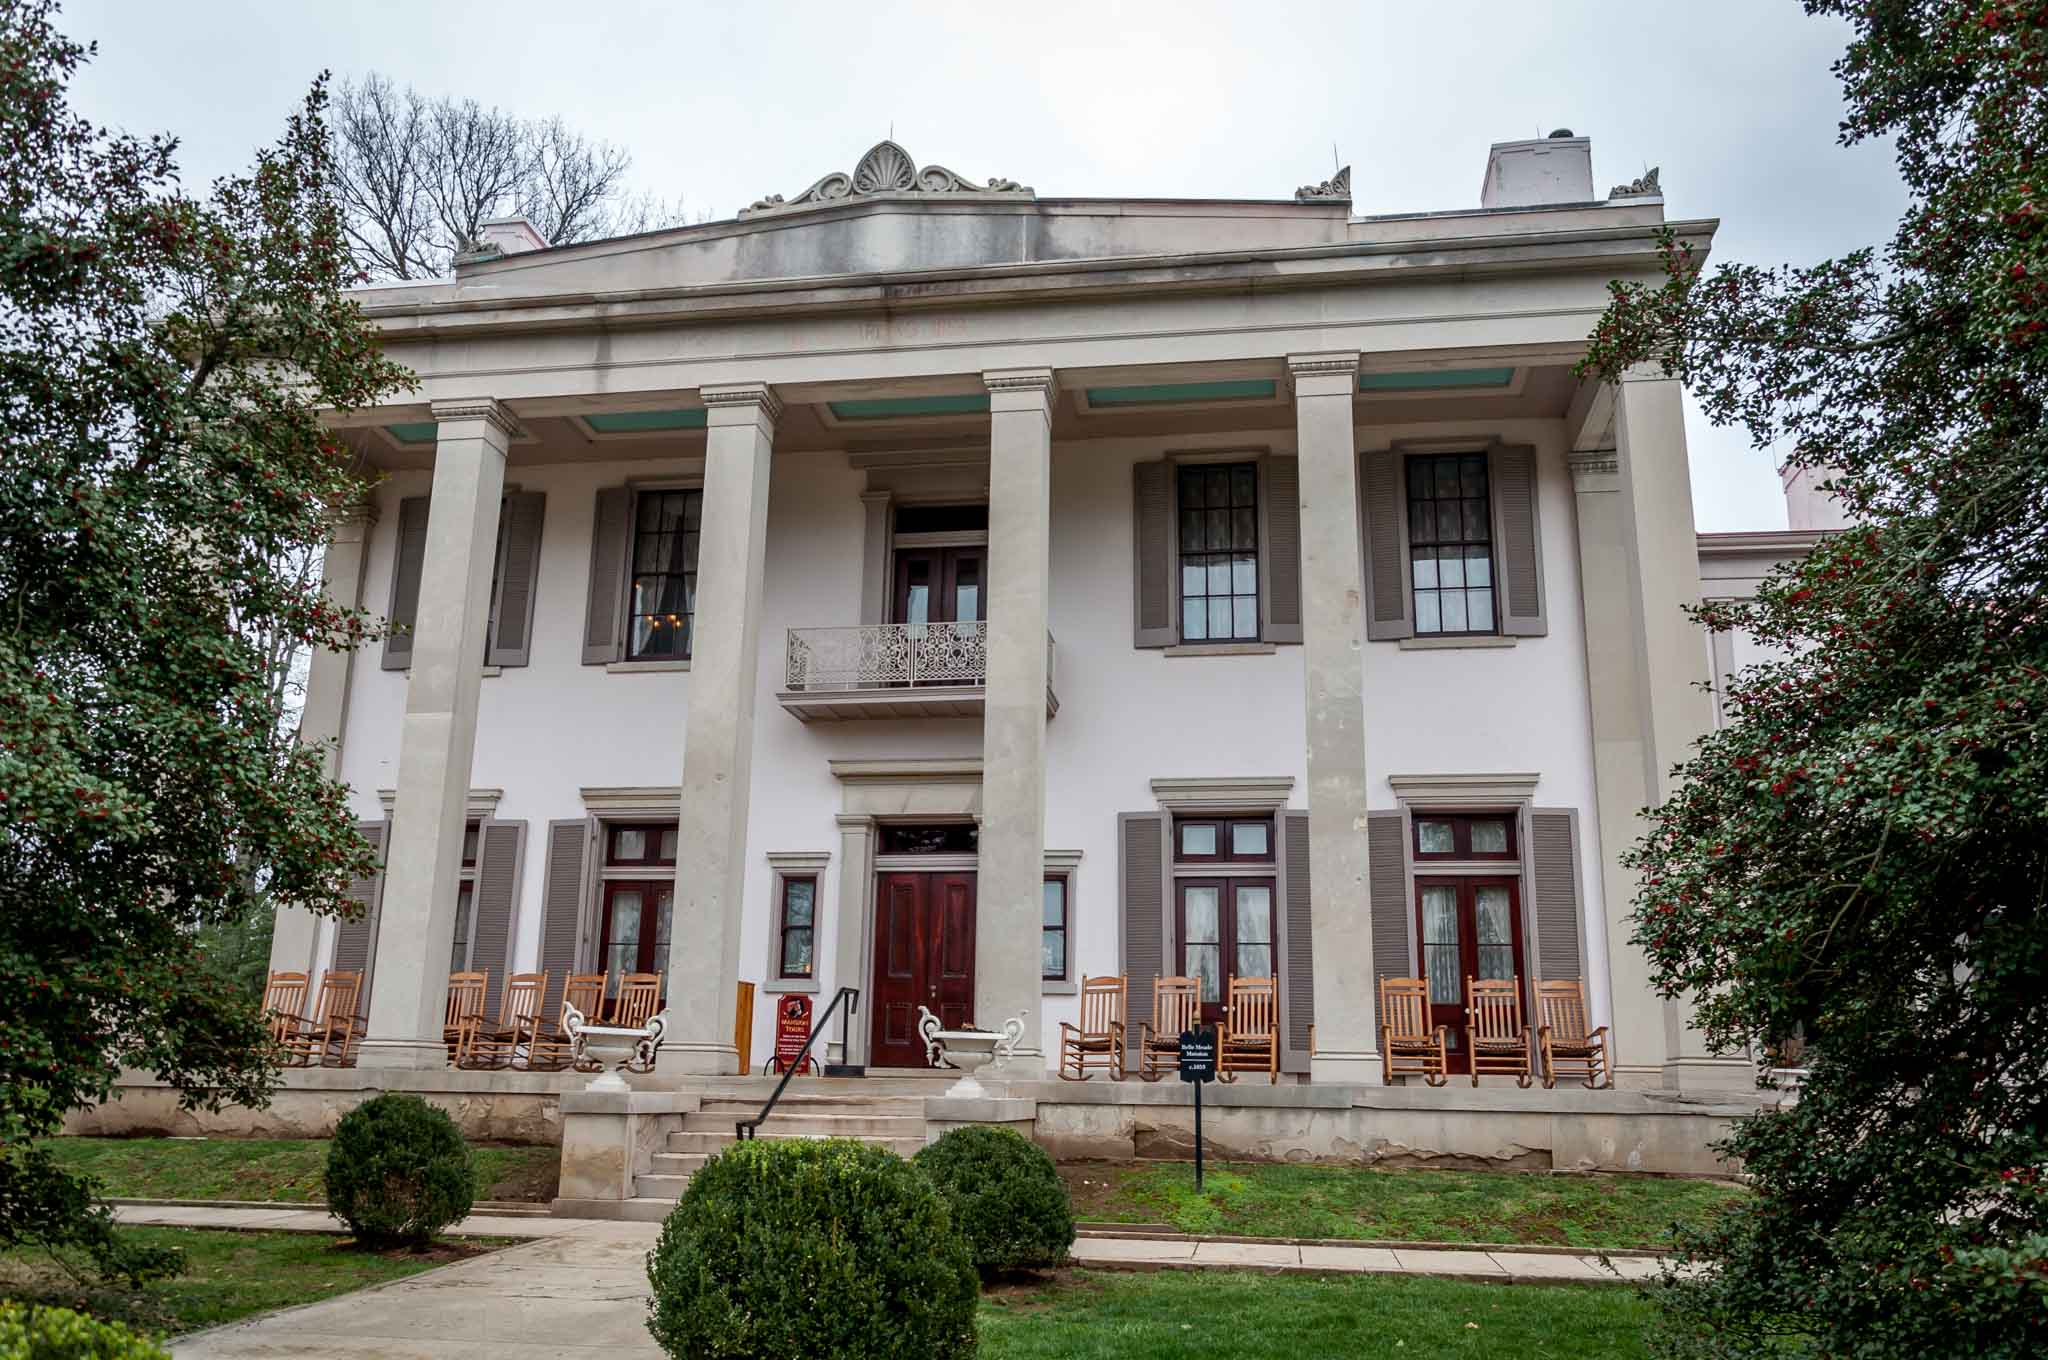 Columned Greek-Revival mansion with chairs on the front porch